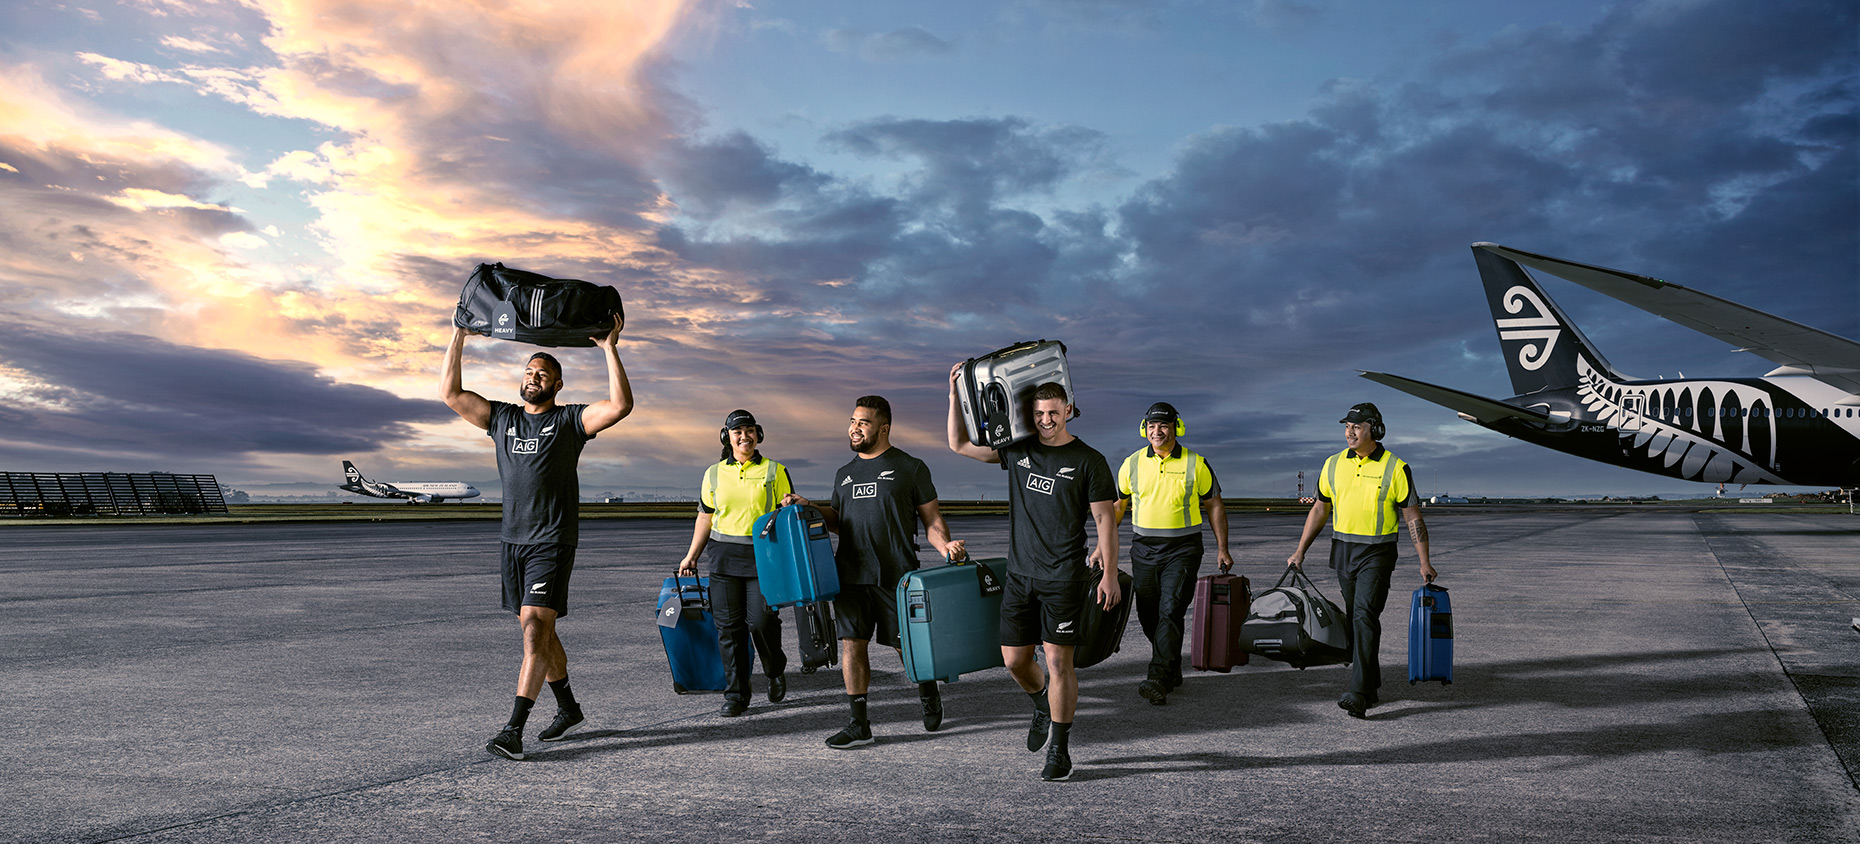 Advertising  Photographer for Air New Zealand and the all blacks, retouching and Photography Photoshop